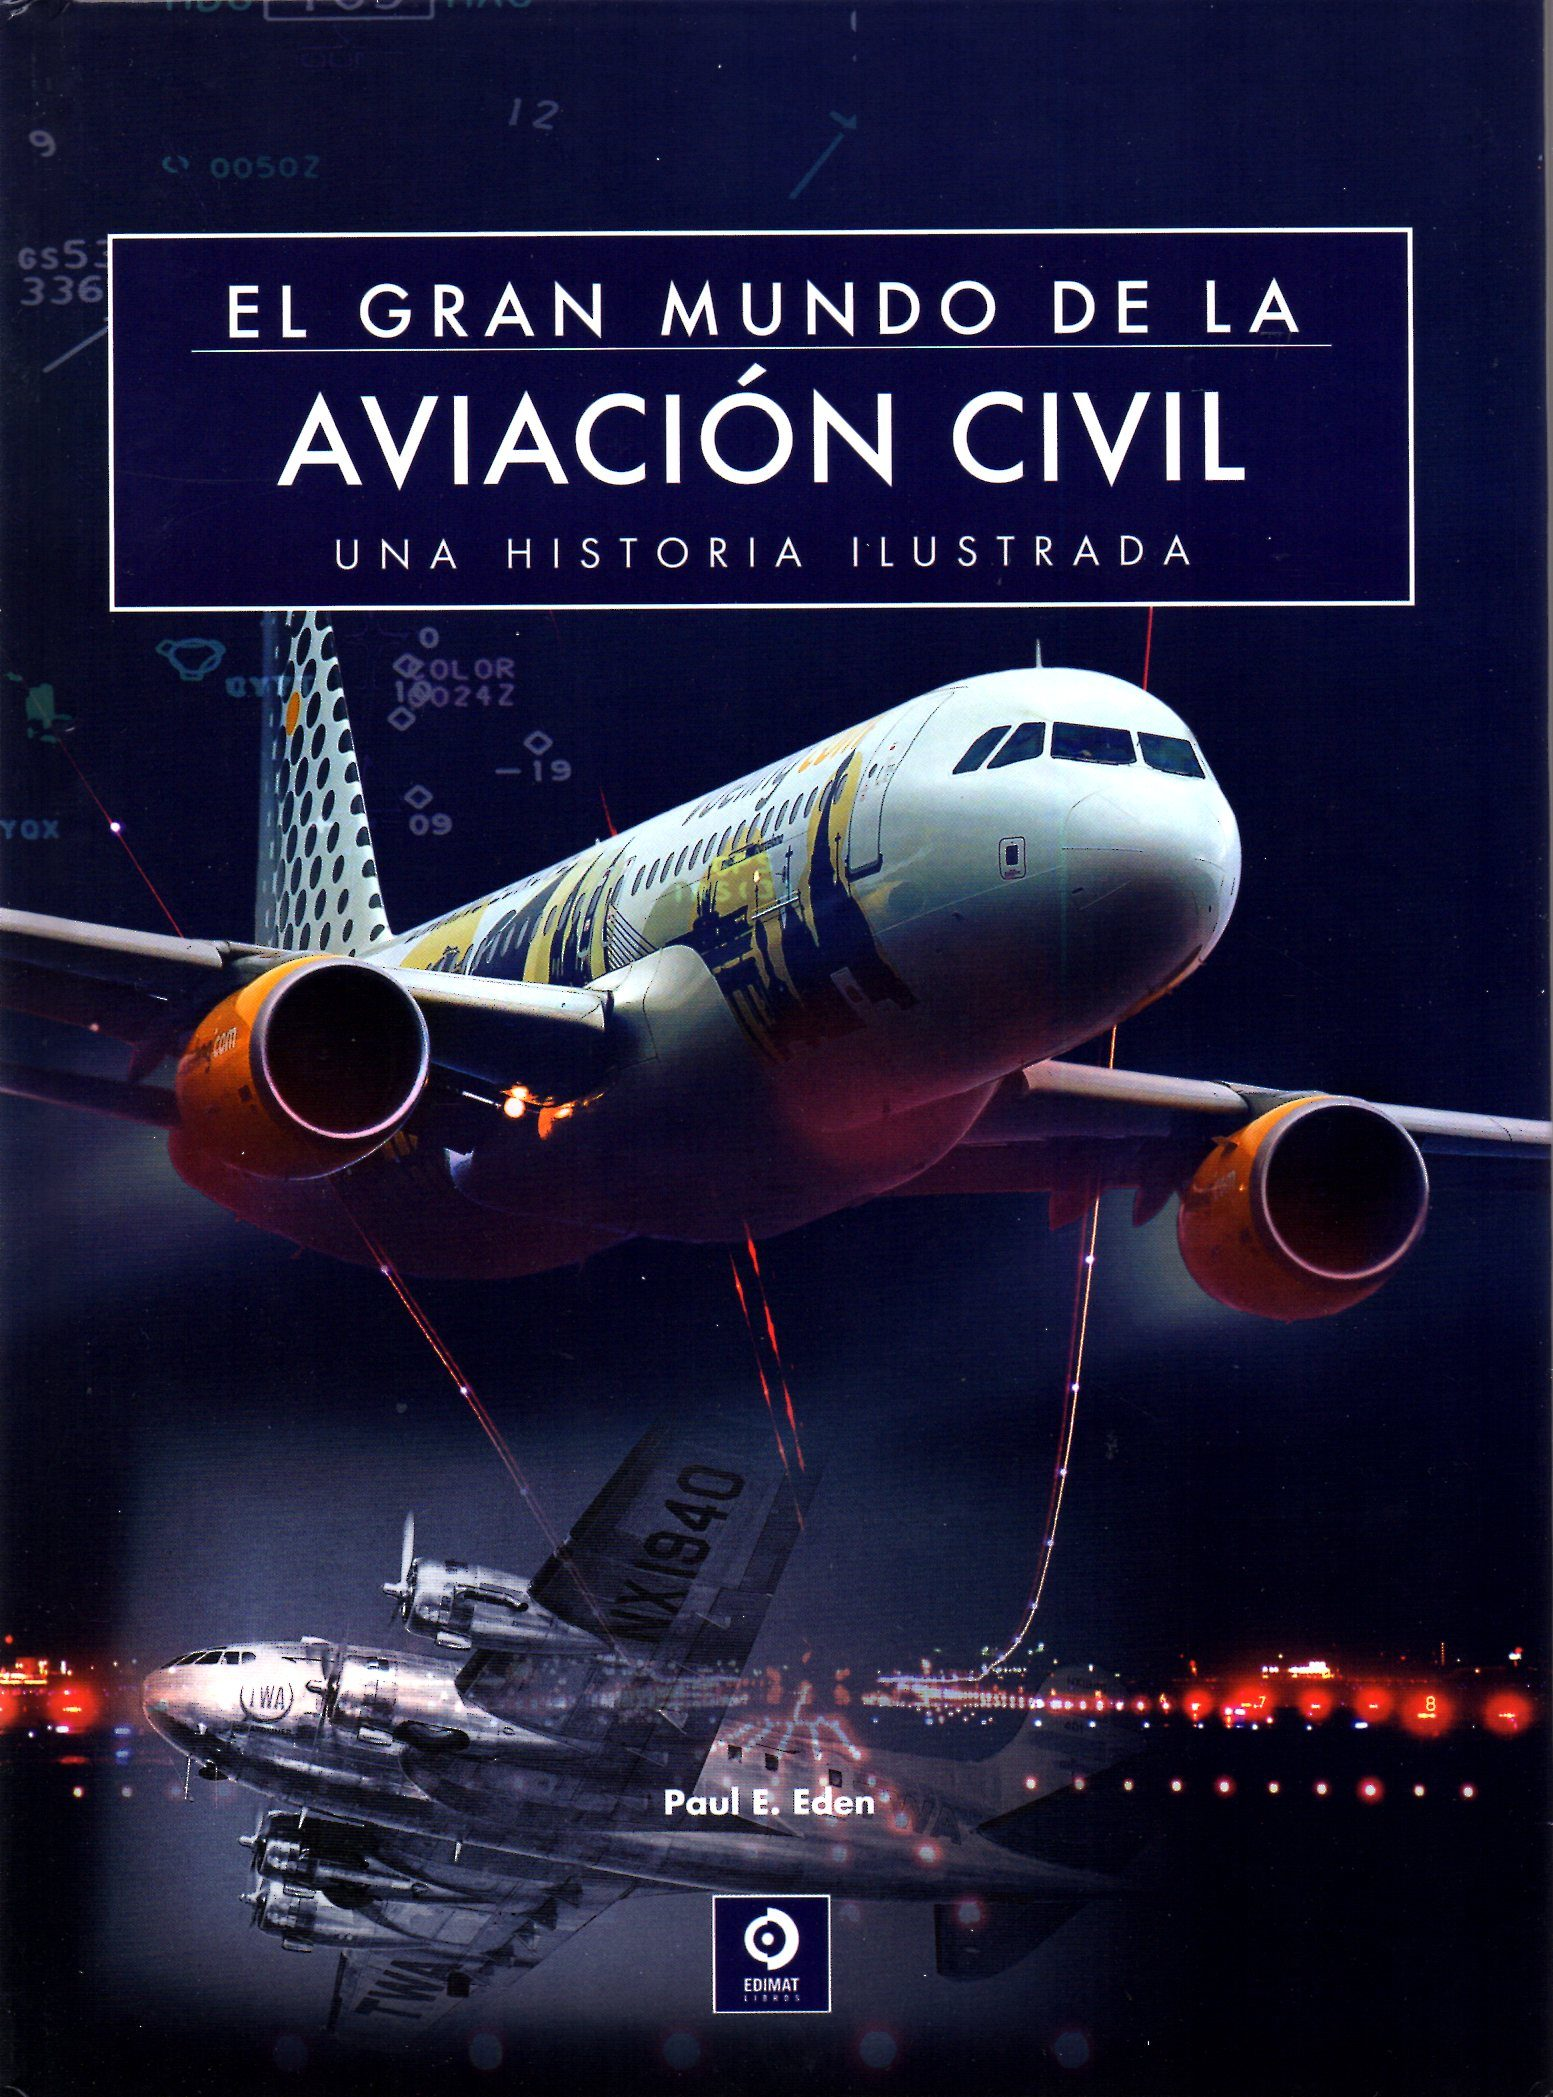 El Gran Mundo De La Aviacion Civil Paul E Eden Comprar Libro